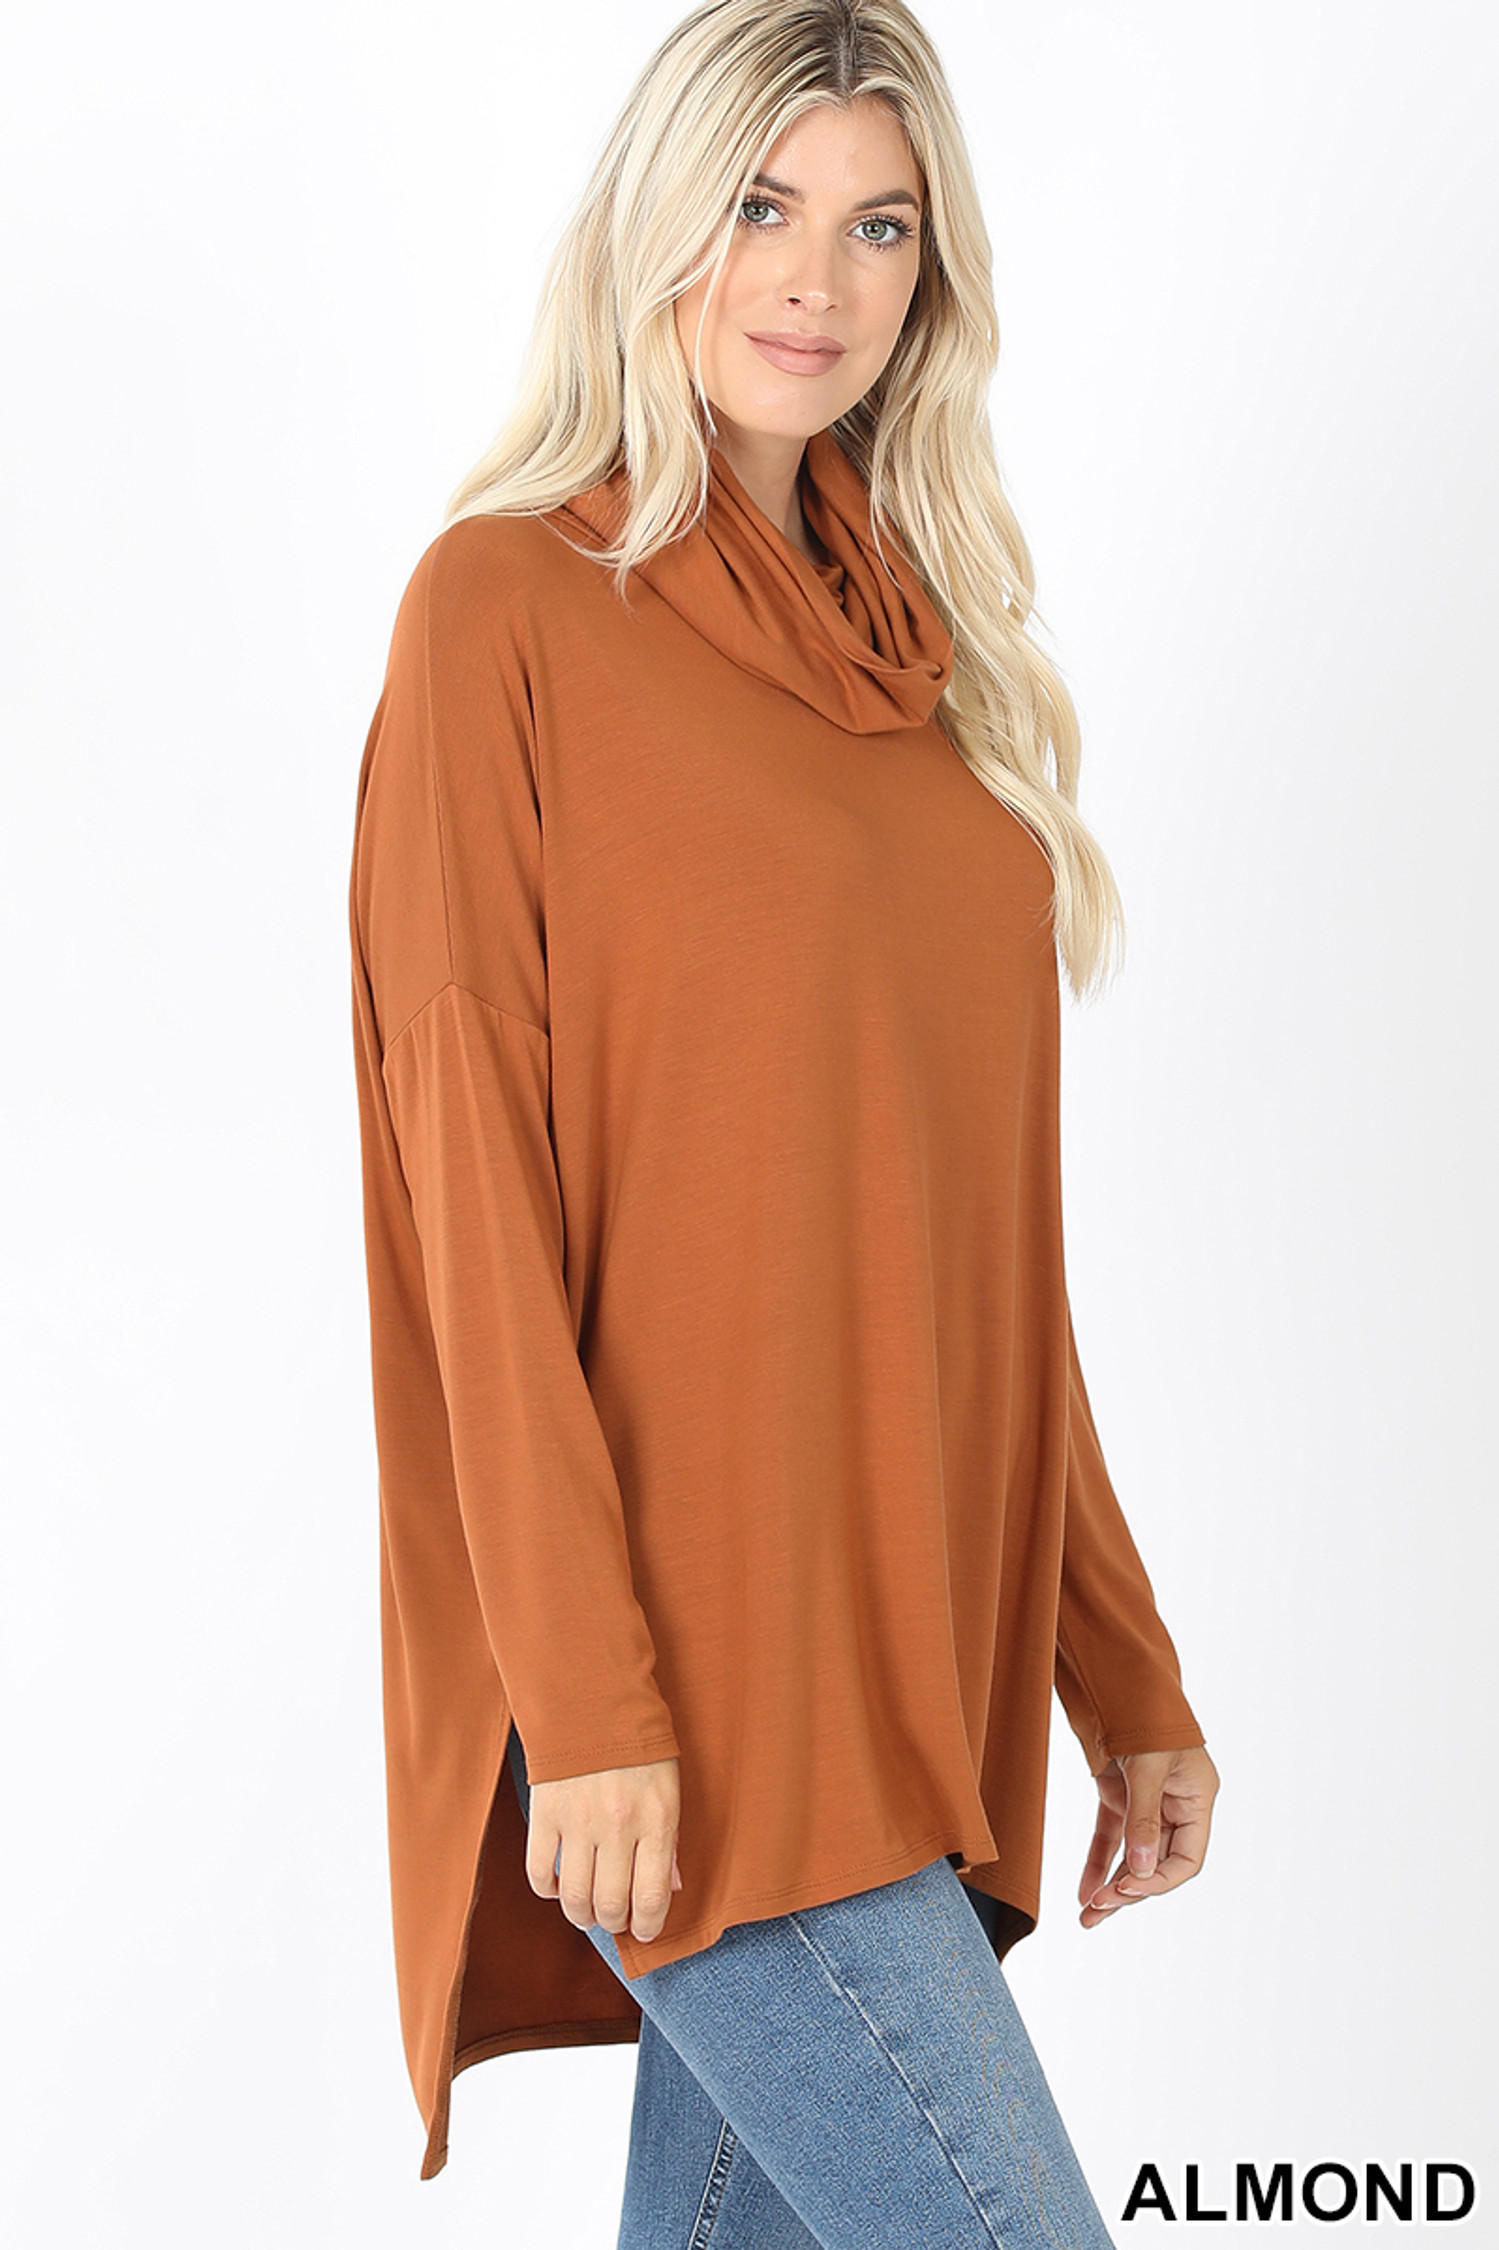 Right side image of Almond Cowl Neck Hi-Low Long Sleeve Plus Size Top